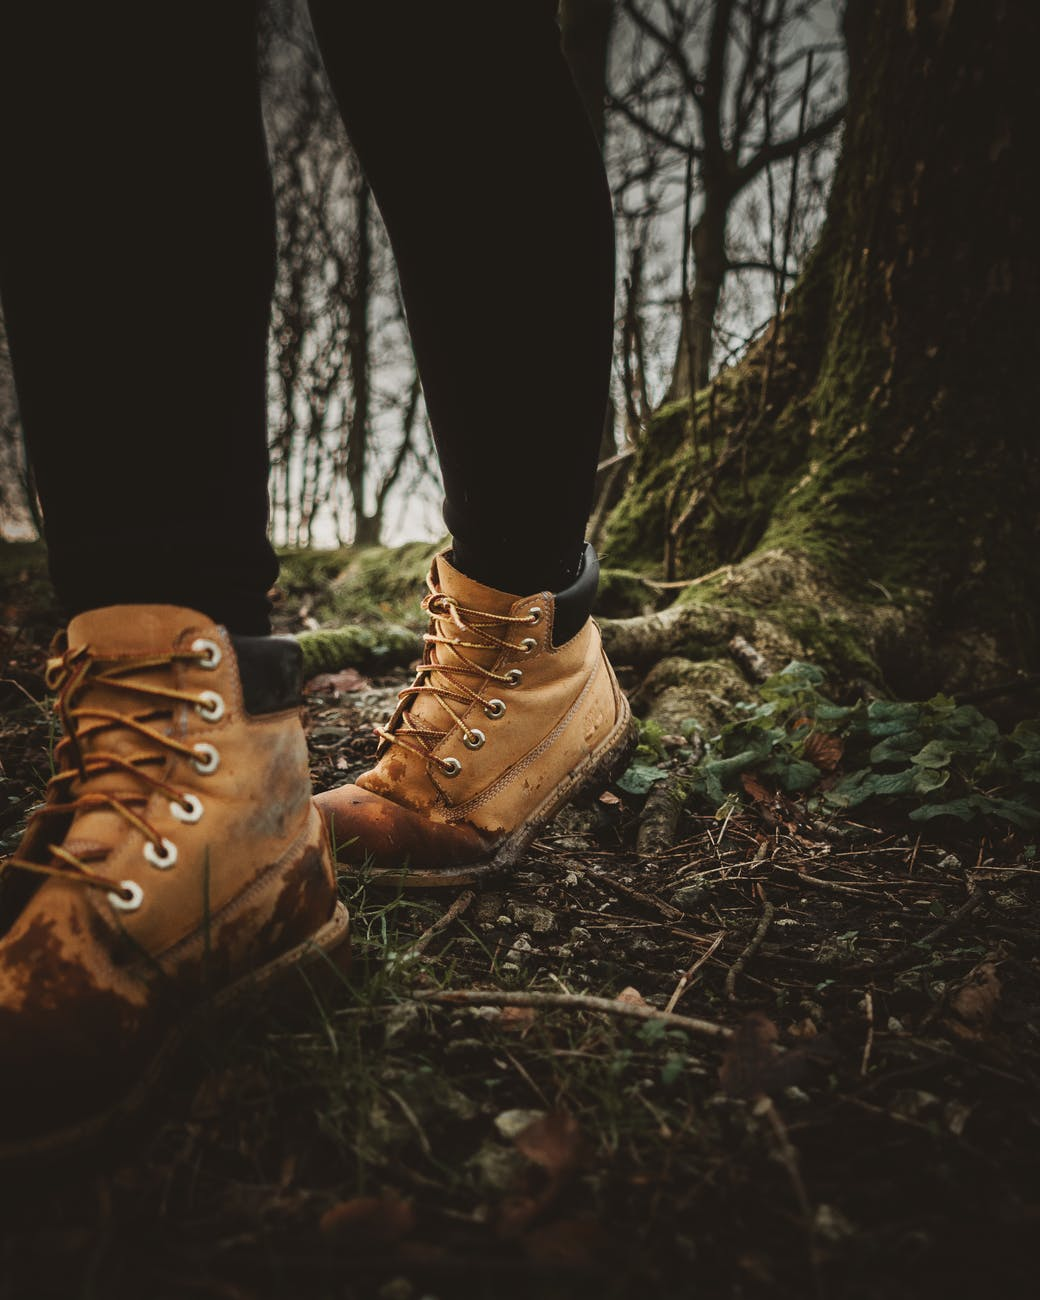 person wearing brown leather hiking boots standing on brown dried leaves